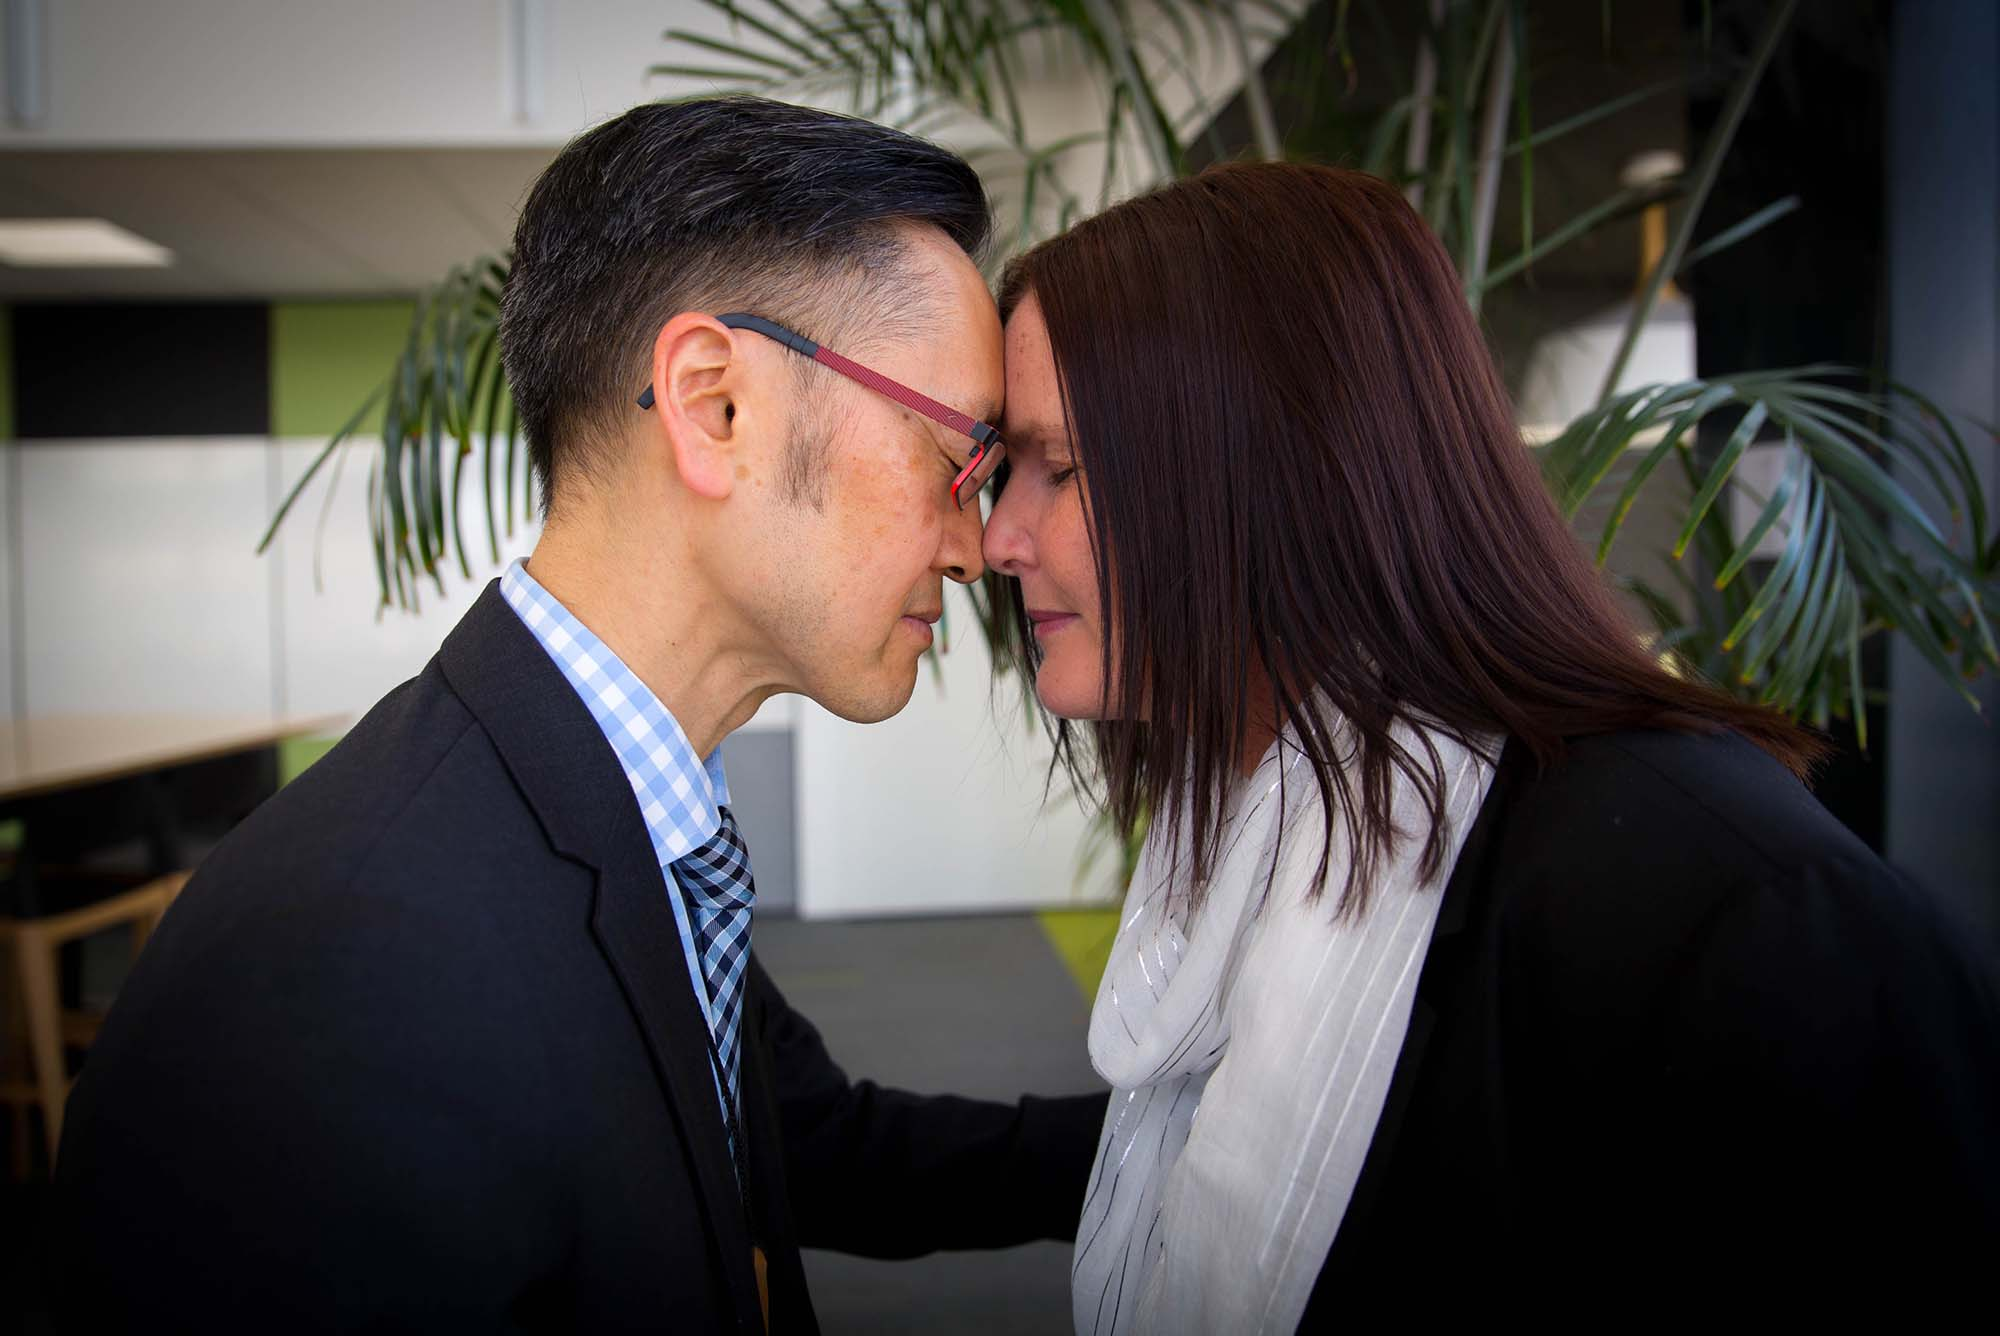 Hongi between Chief Archivist Richard Foy and Vicki Wood from Axiell